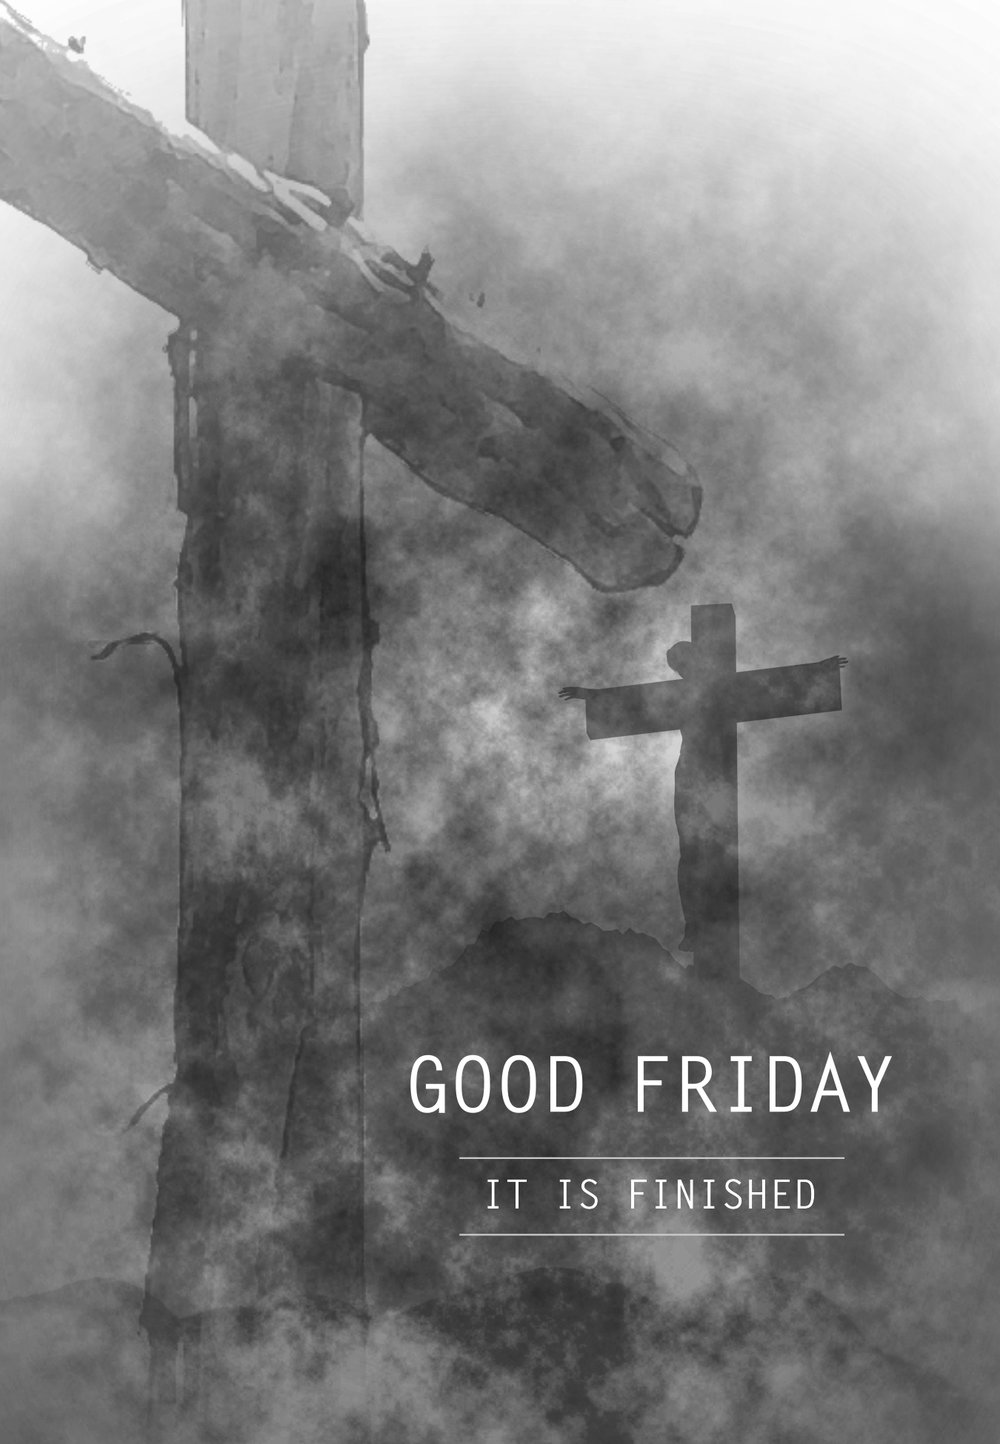 The Good Friday Liturgy does not include Holy Communion, symbolizing Jesus' departure on the cross. The liturgy is a combination of readings, reflections and choral interludes. It is a somber service. - Click image for more information about this service.